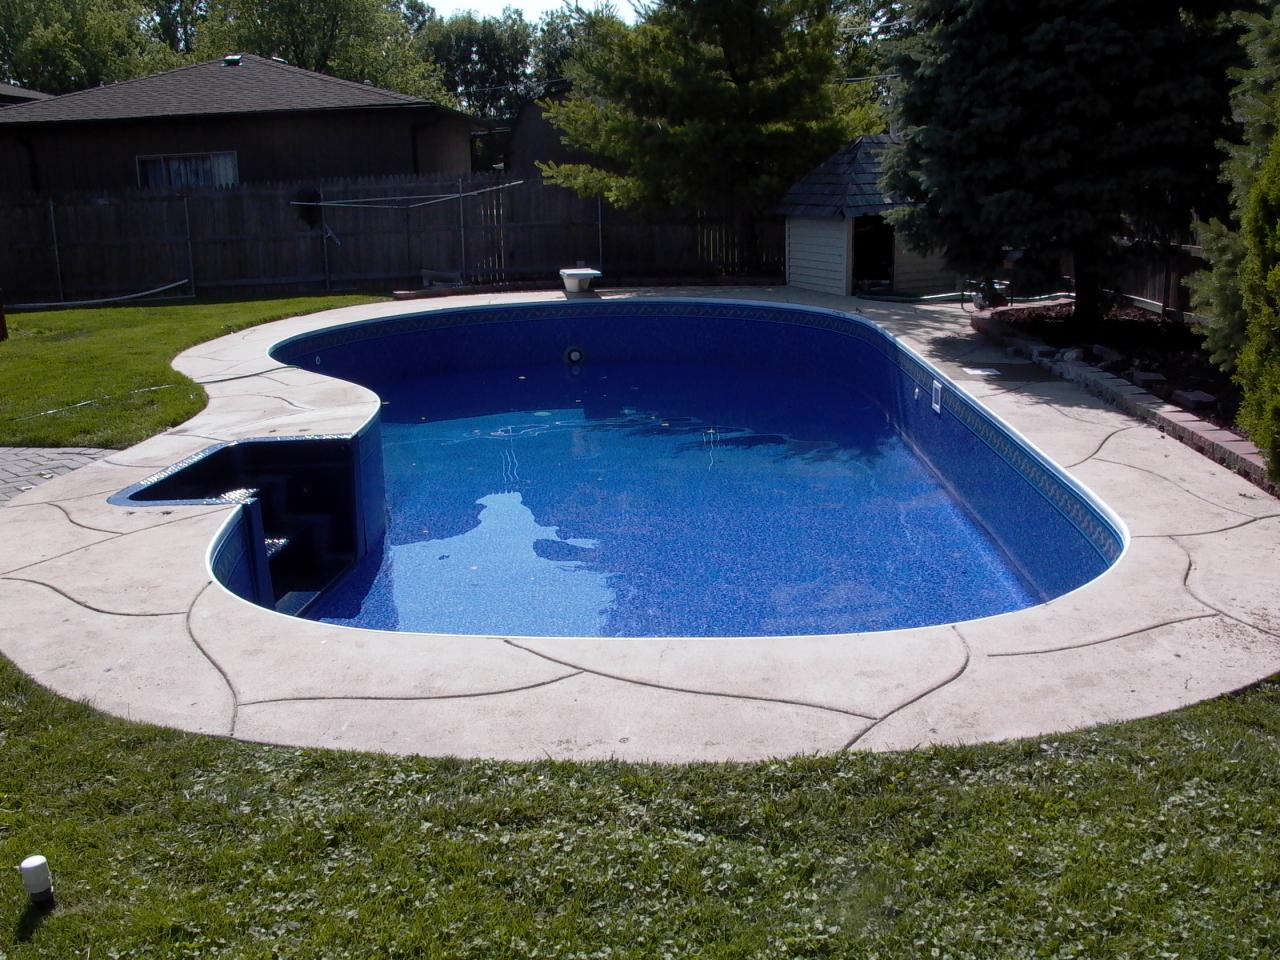 Pools by kure pool renovations for Inground pool coping paint